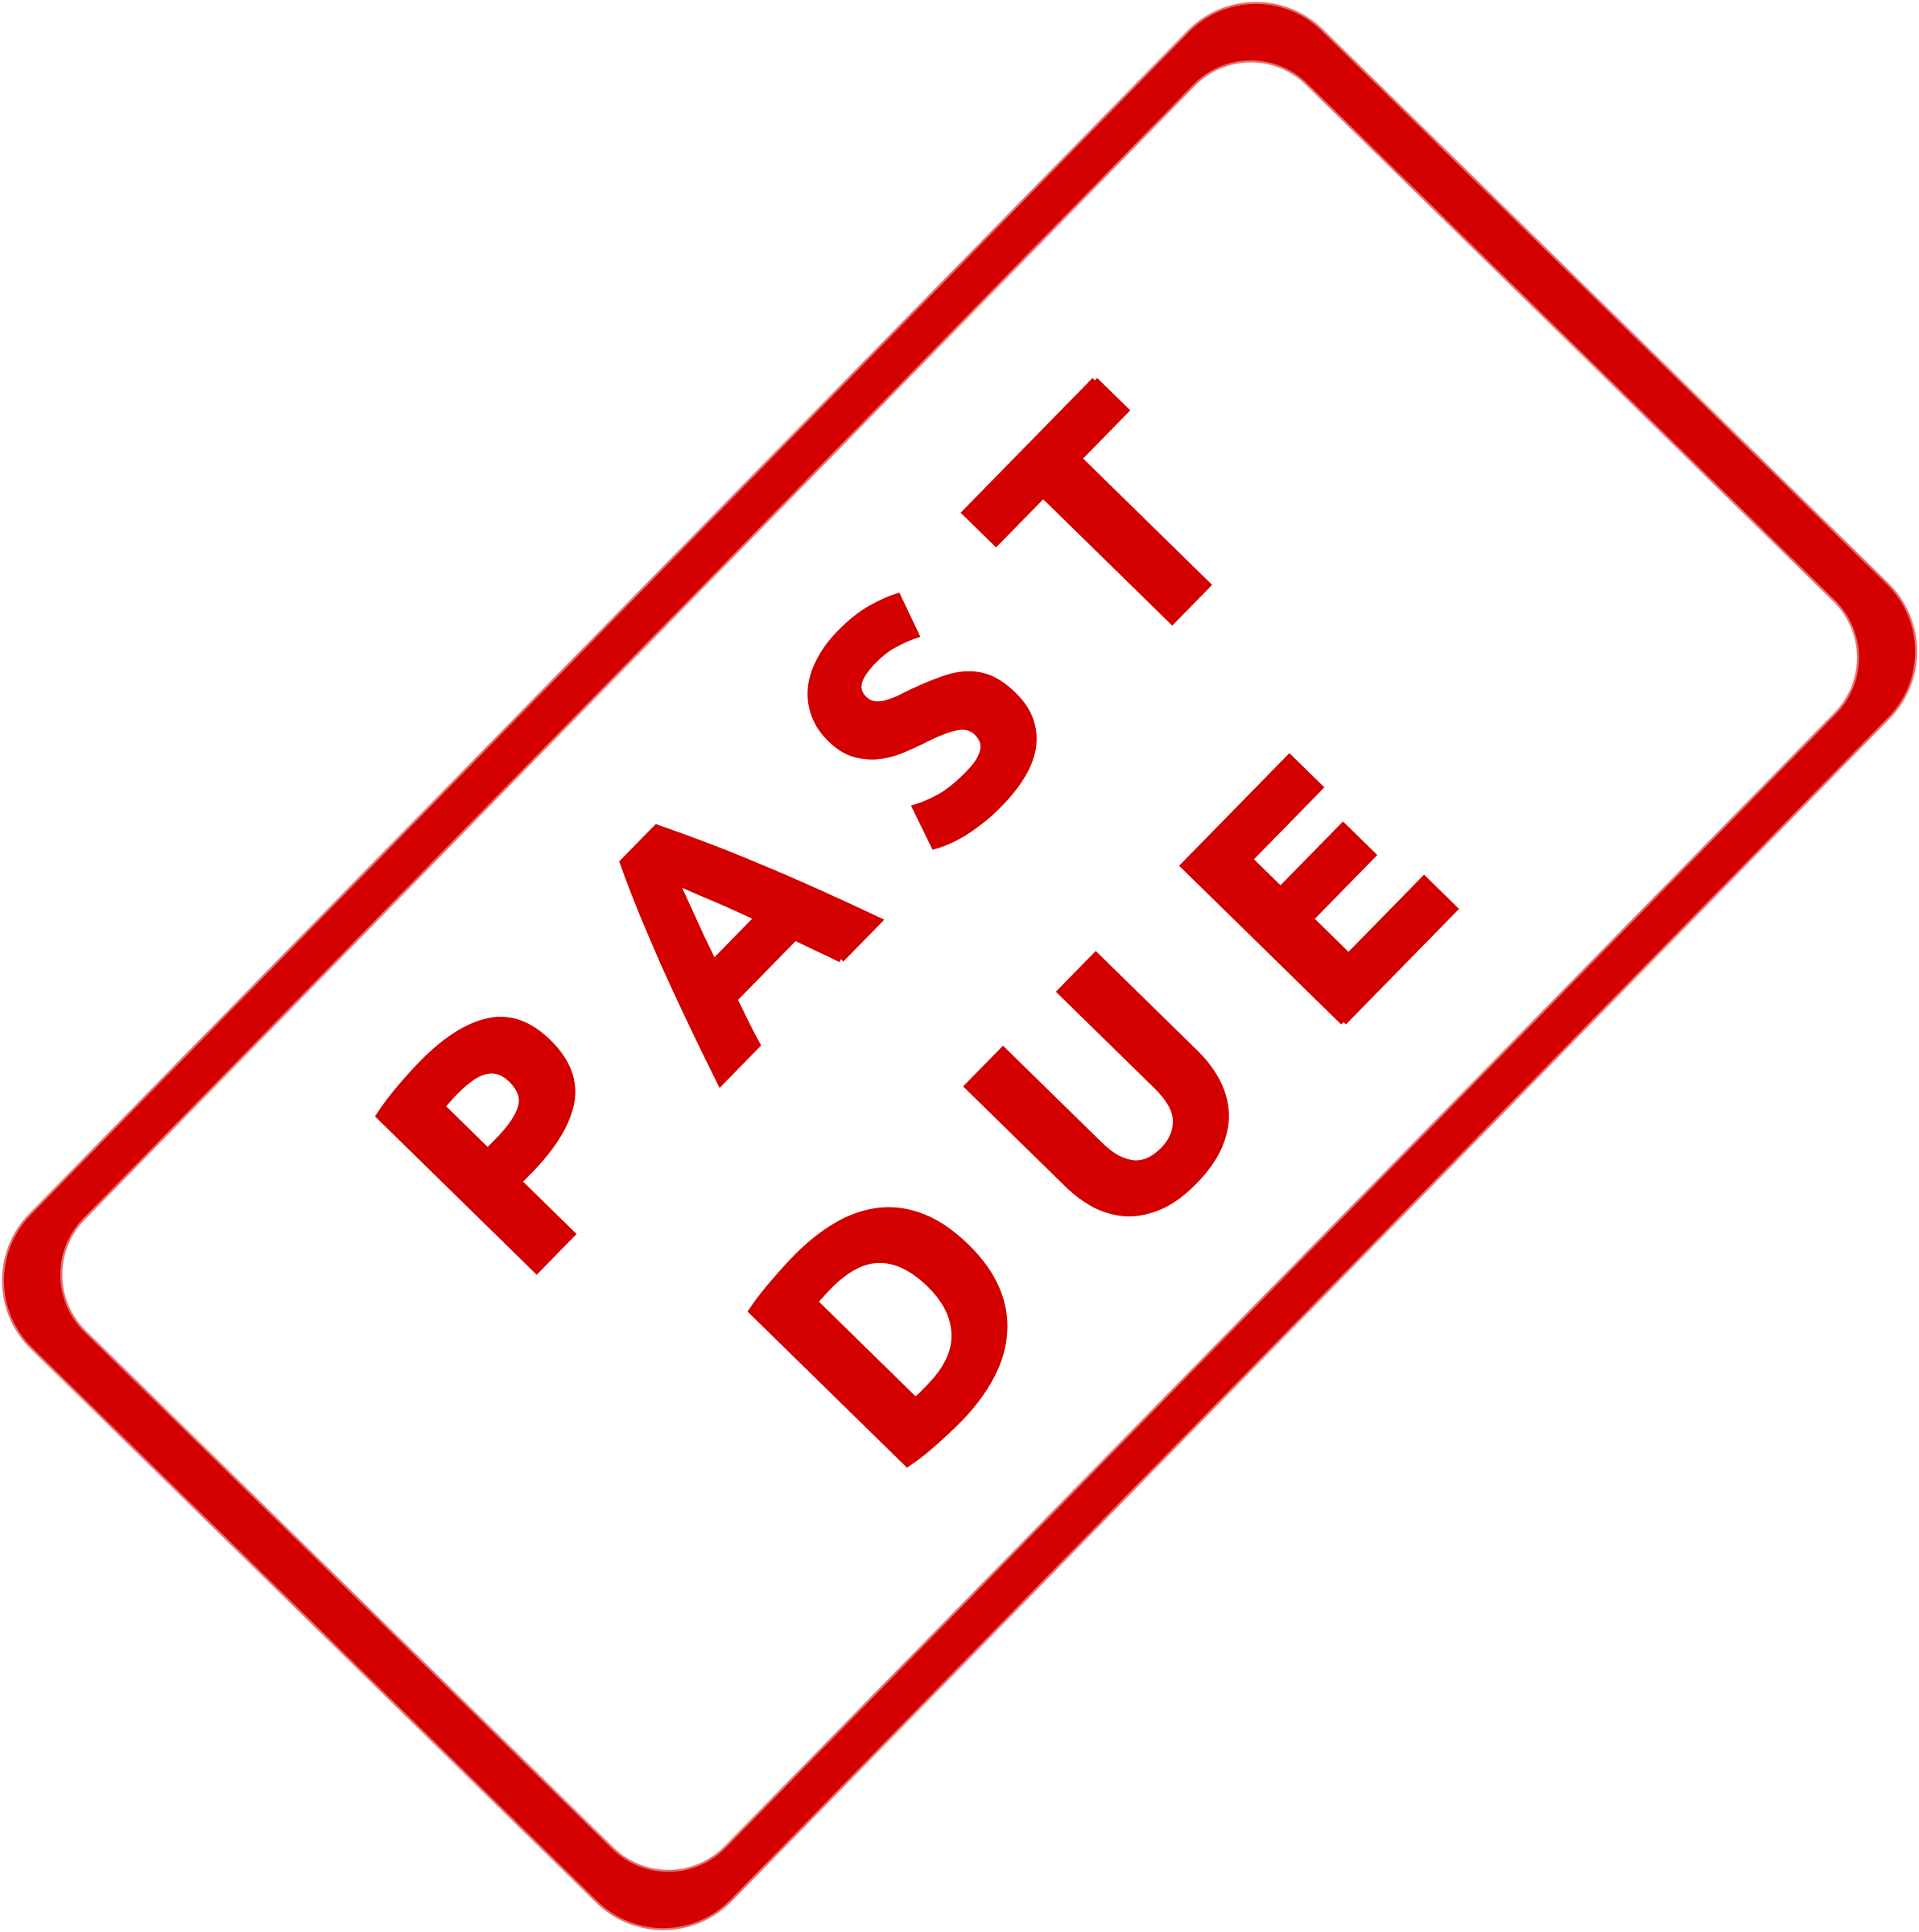 Past due stamp big. Words clipart business